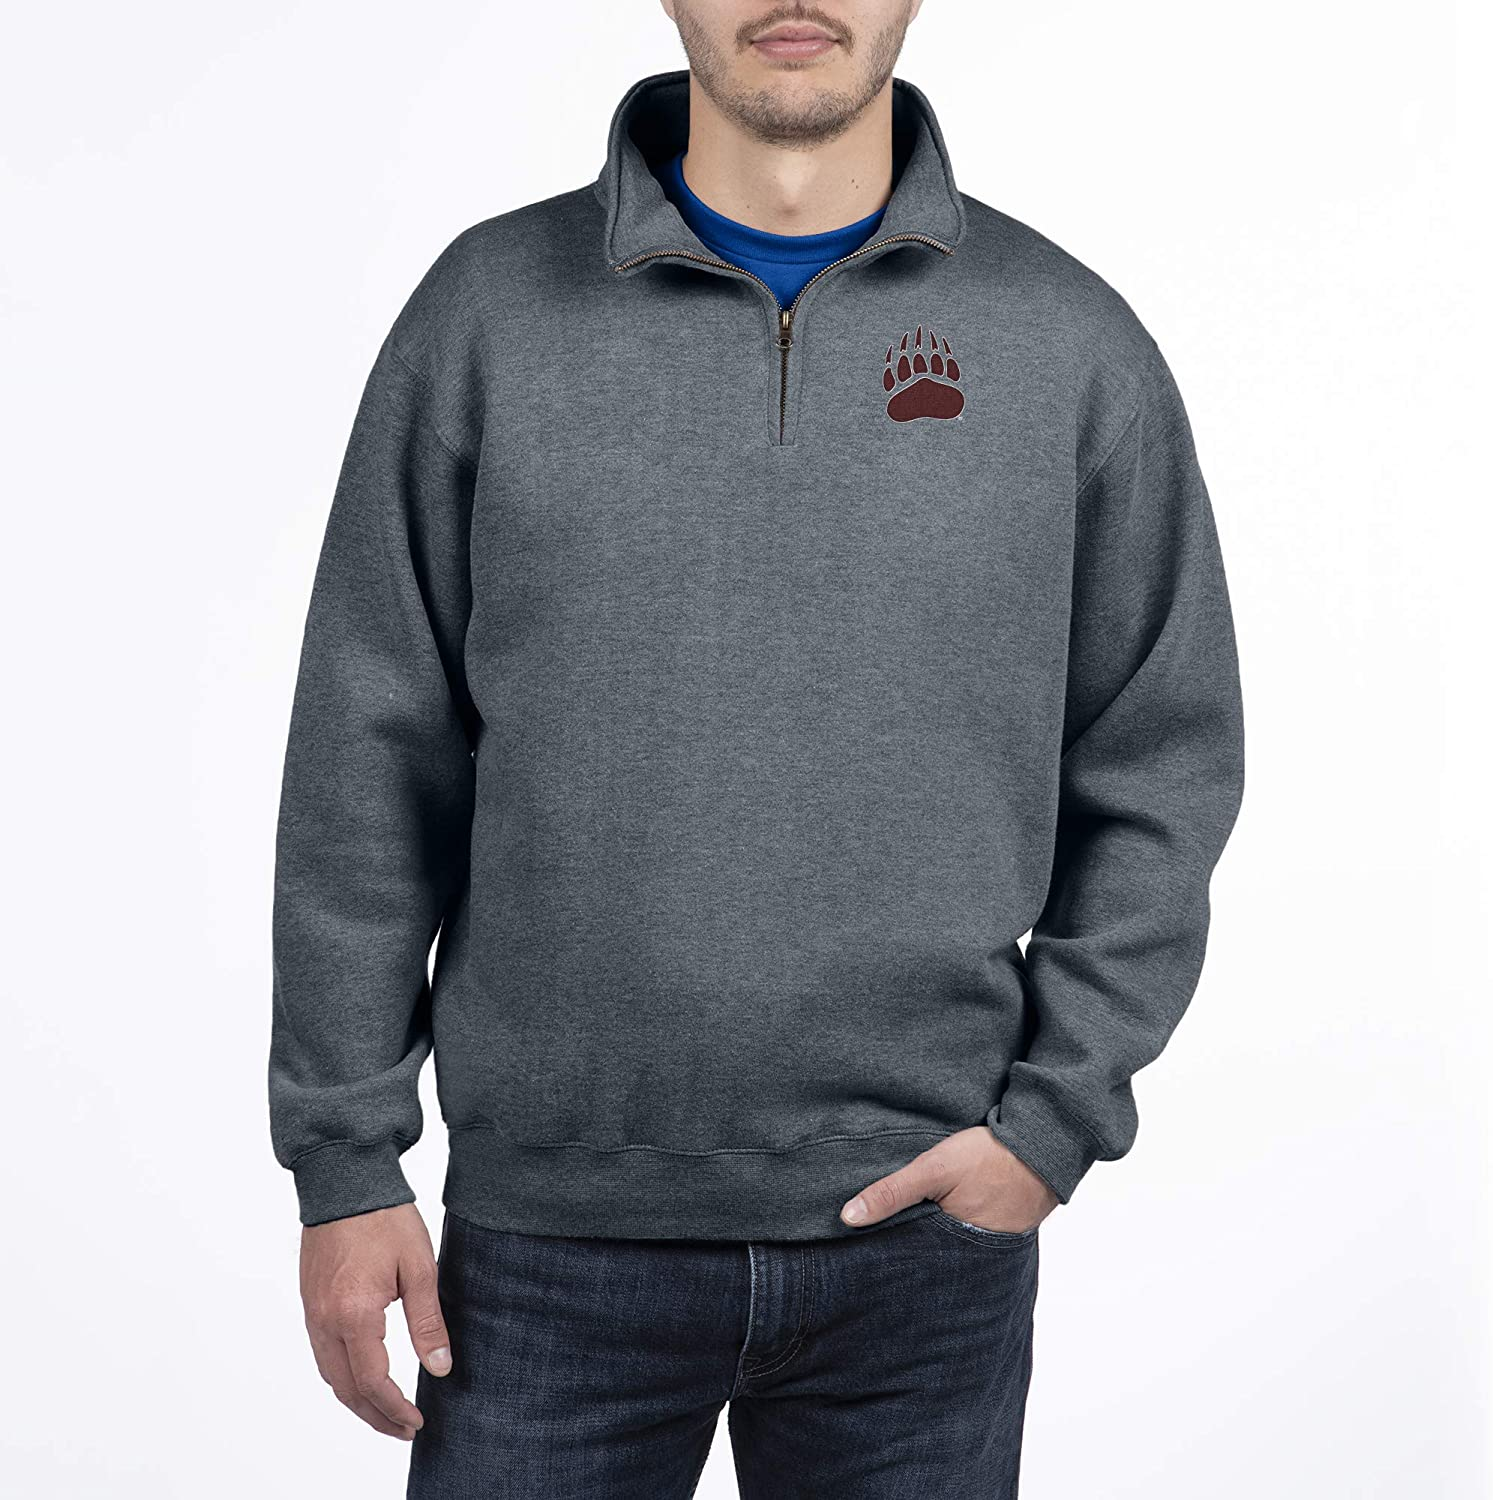 Top of the World NCAA Mens Dark Heather Classic Quarter Zip Pullover